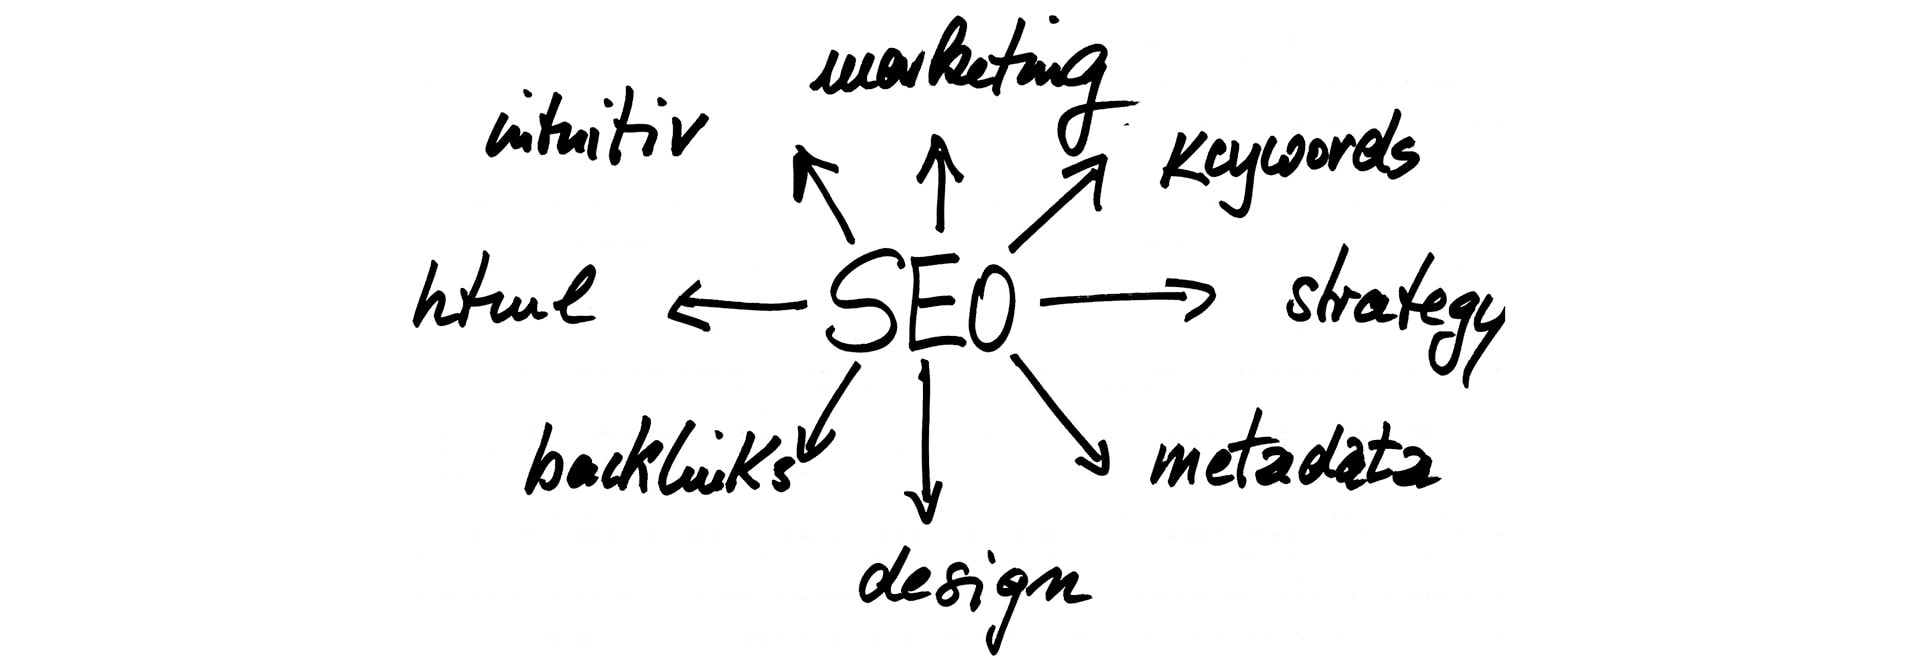 Sharing Links Increases Visibility